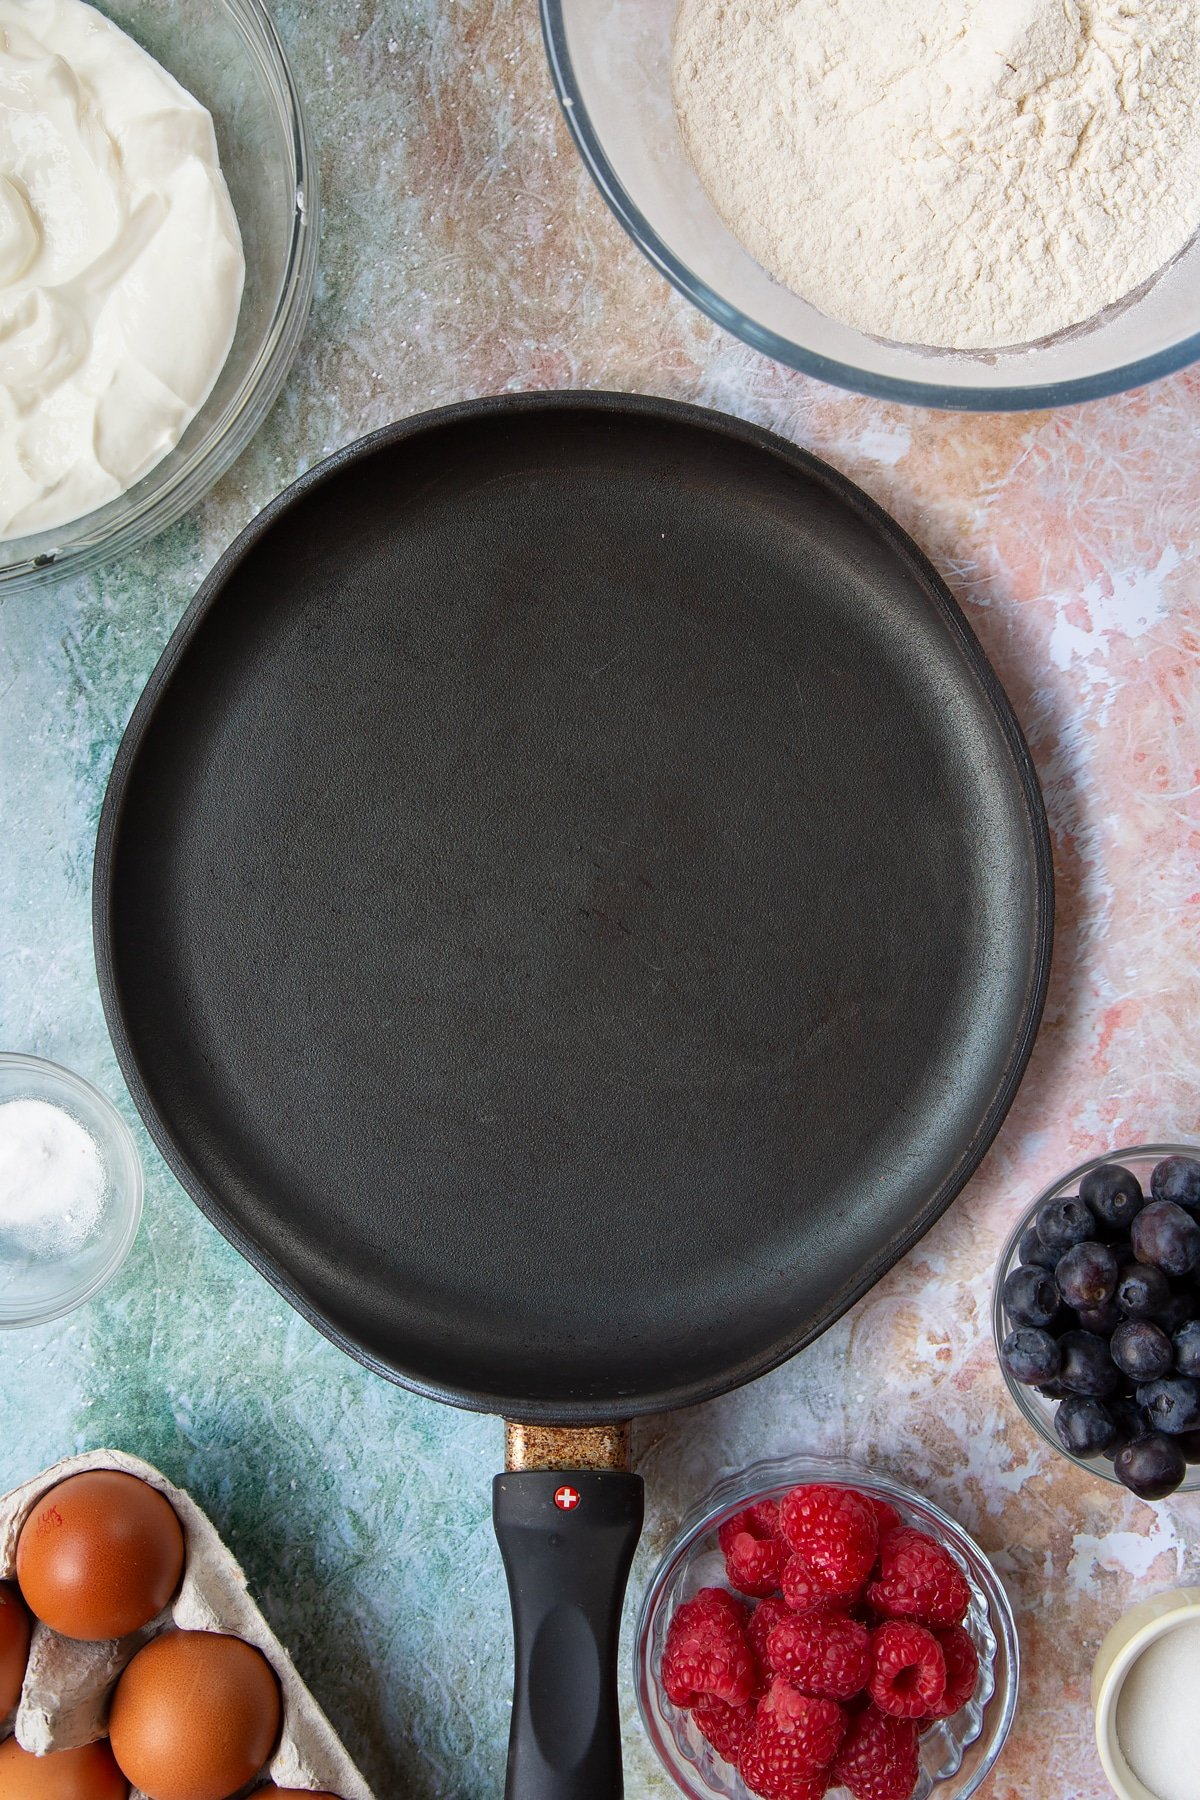 A hot frying pan. Berries and ingredients to make skyr pancakes surround the pan.